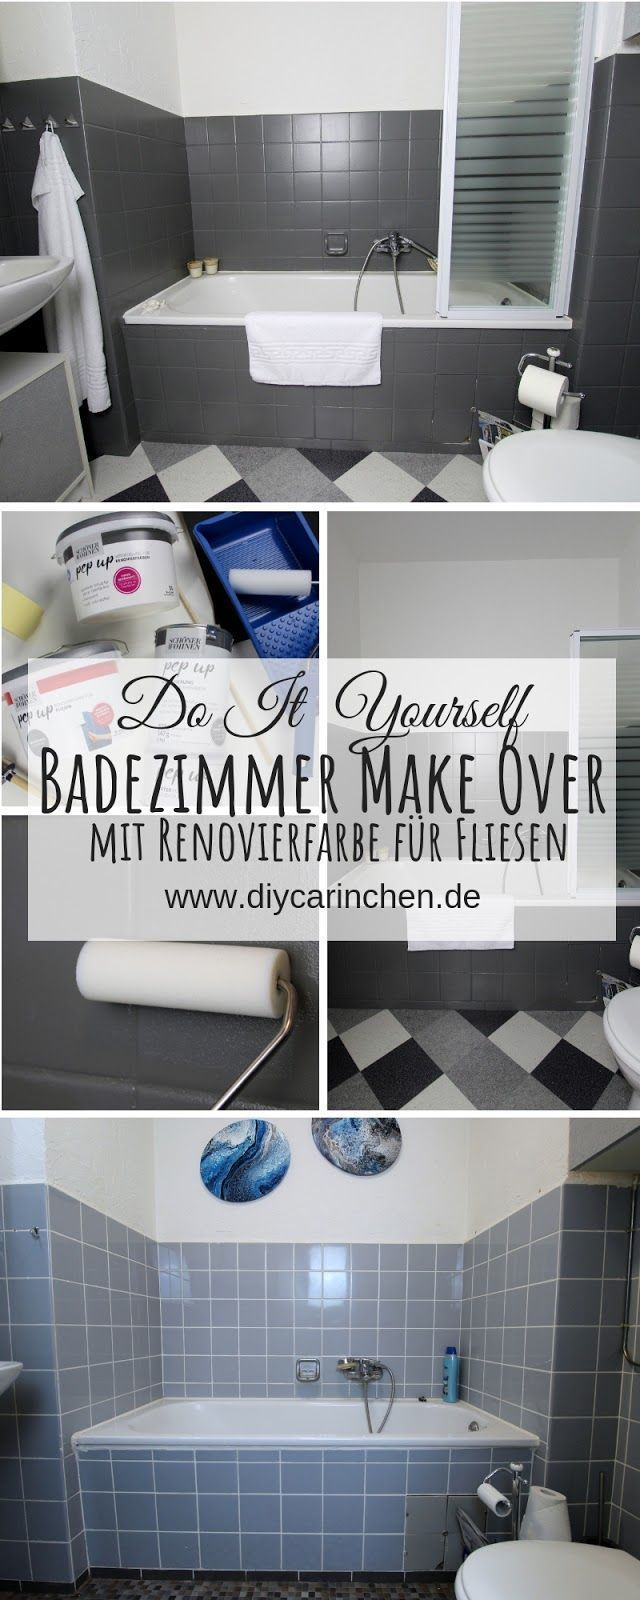 Diy Bathroom Make Over Einfaches Recyceln Mit Dem Beautiful Living Pep Up Renova Badezimmer Streichen Badezimmer Renovieren Renovieren